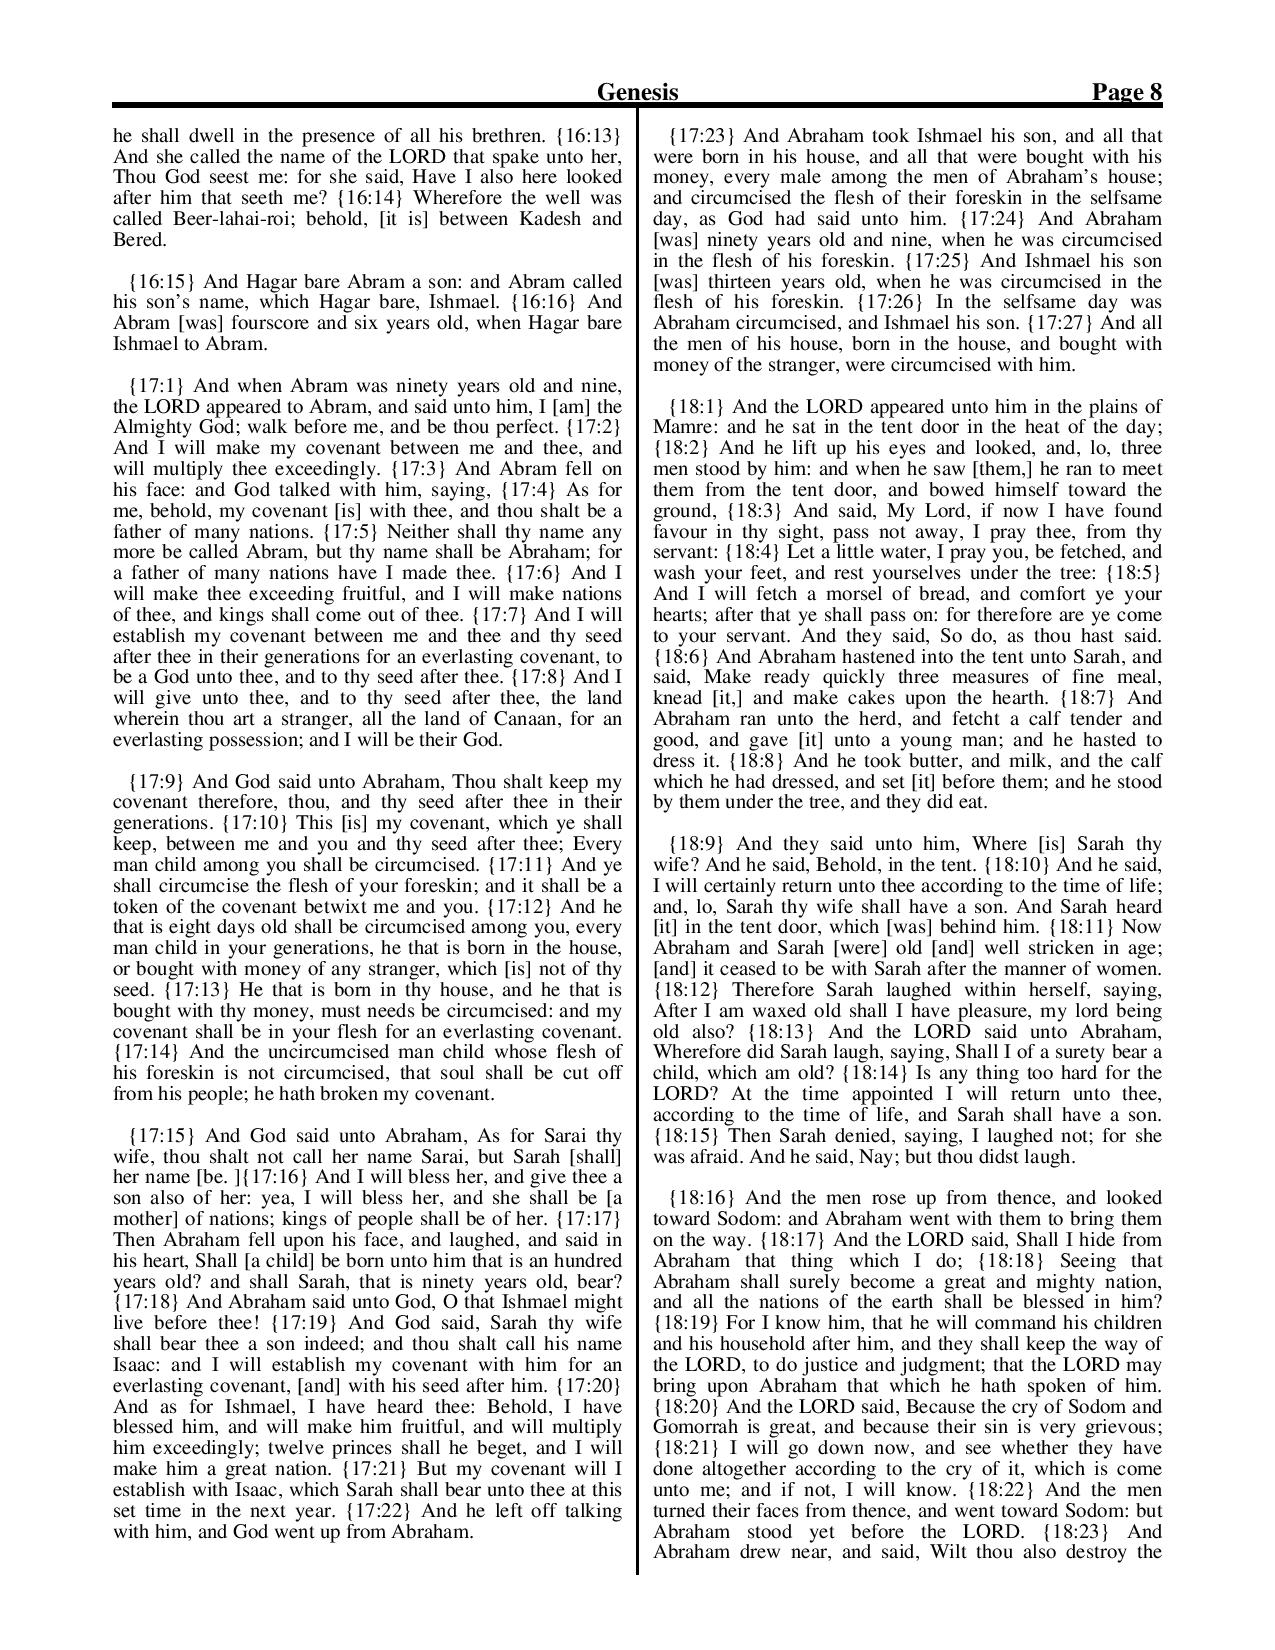 King-James-Bible-KJV-Bible-PDF-page-029